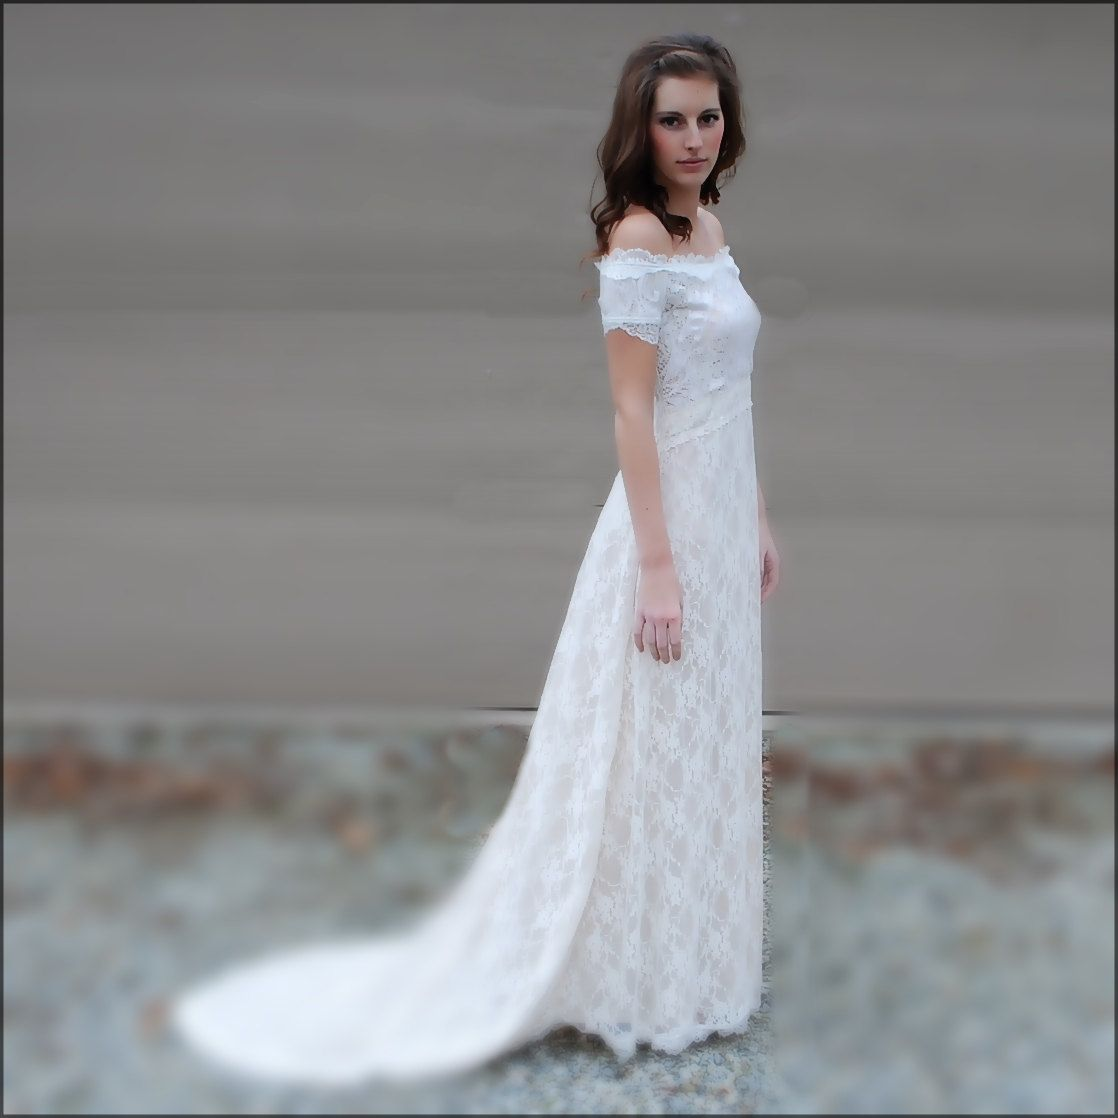 Bohemian wedding dress lace wedding gown s style off